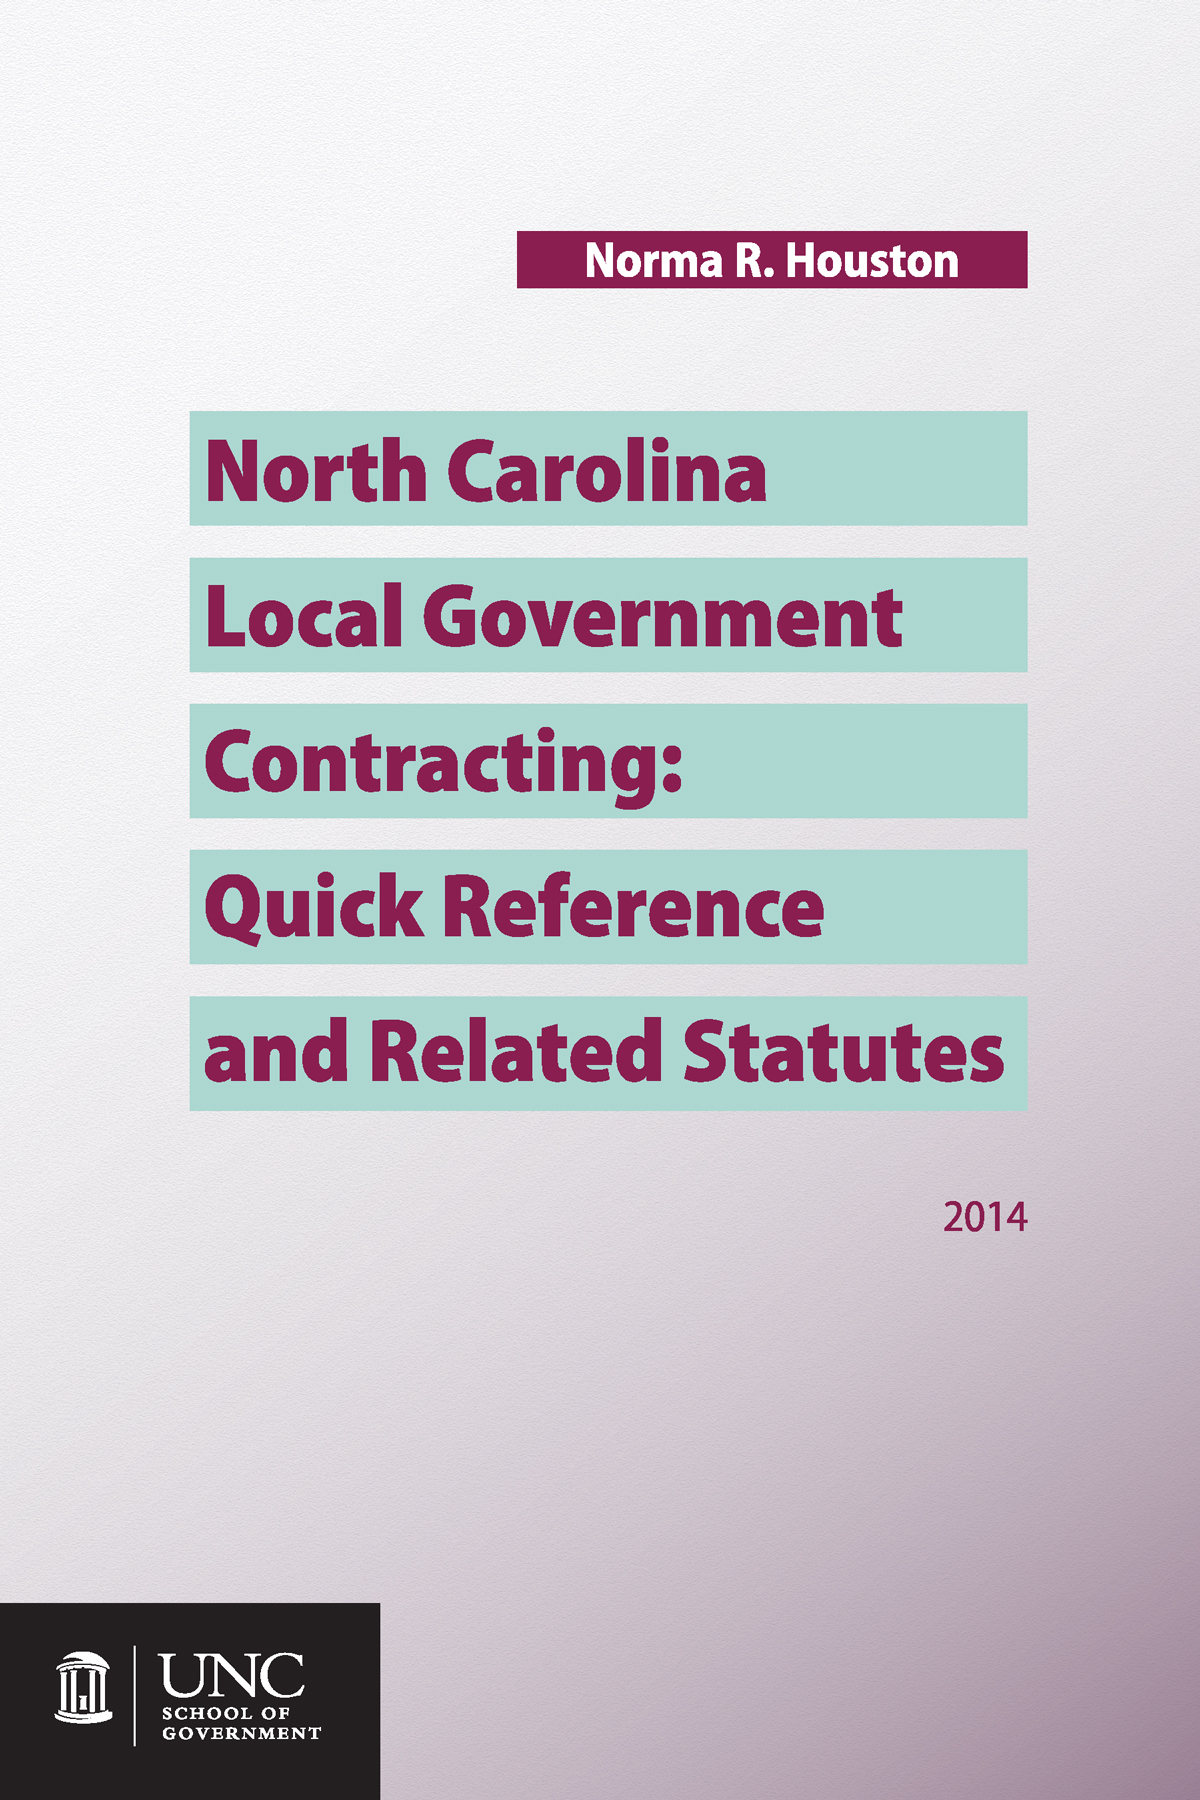 Cover image for North Carolina Local Government Contracting: Quick Reference and Related Statutes